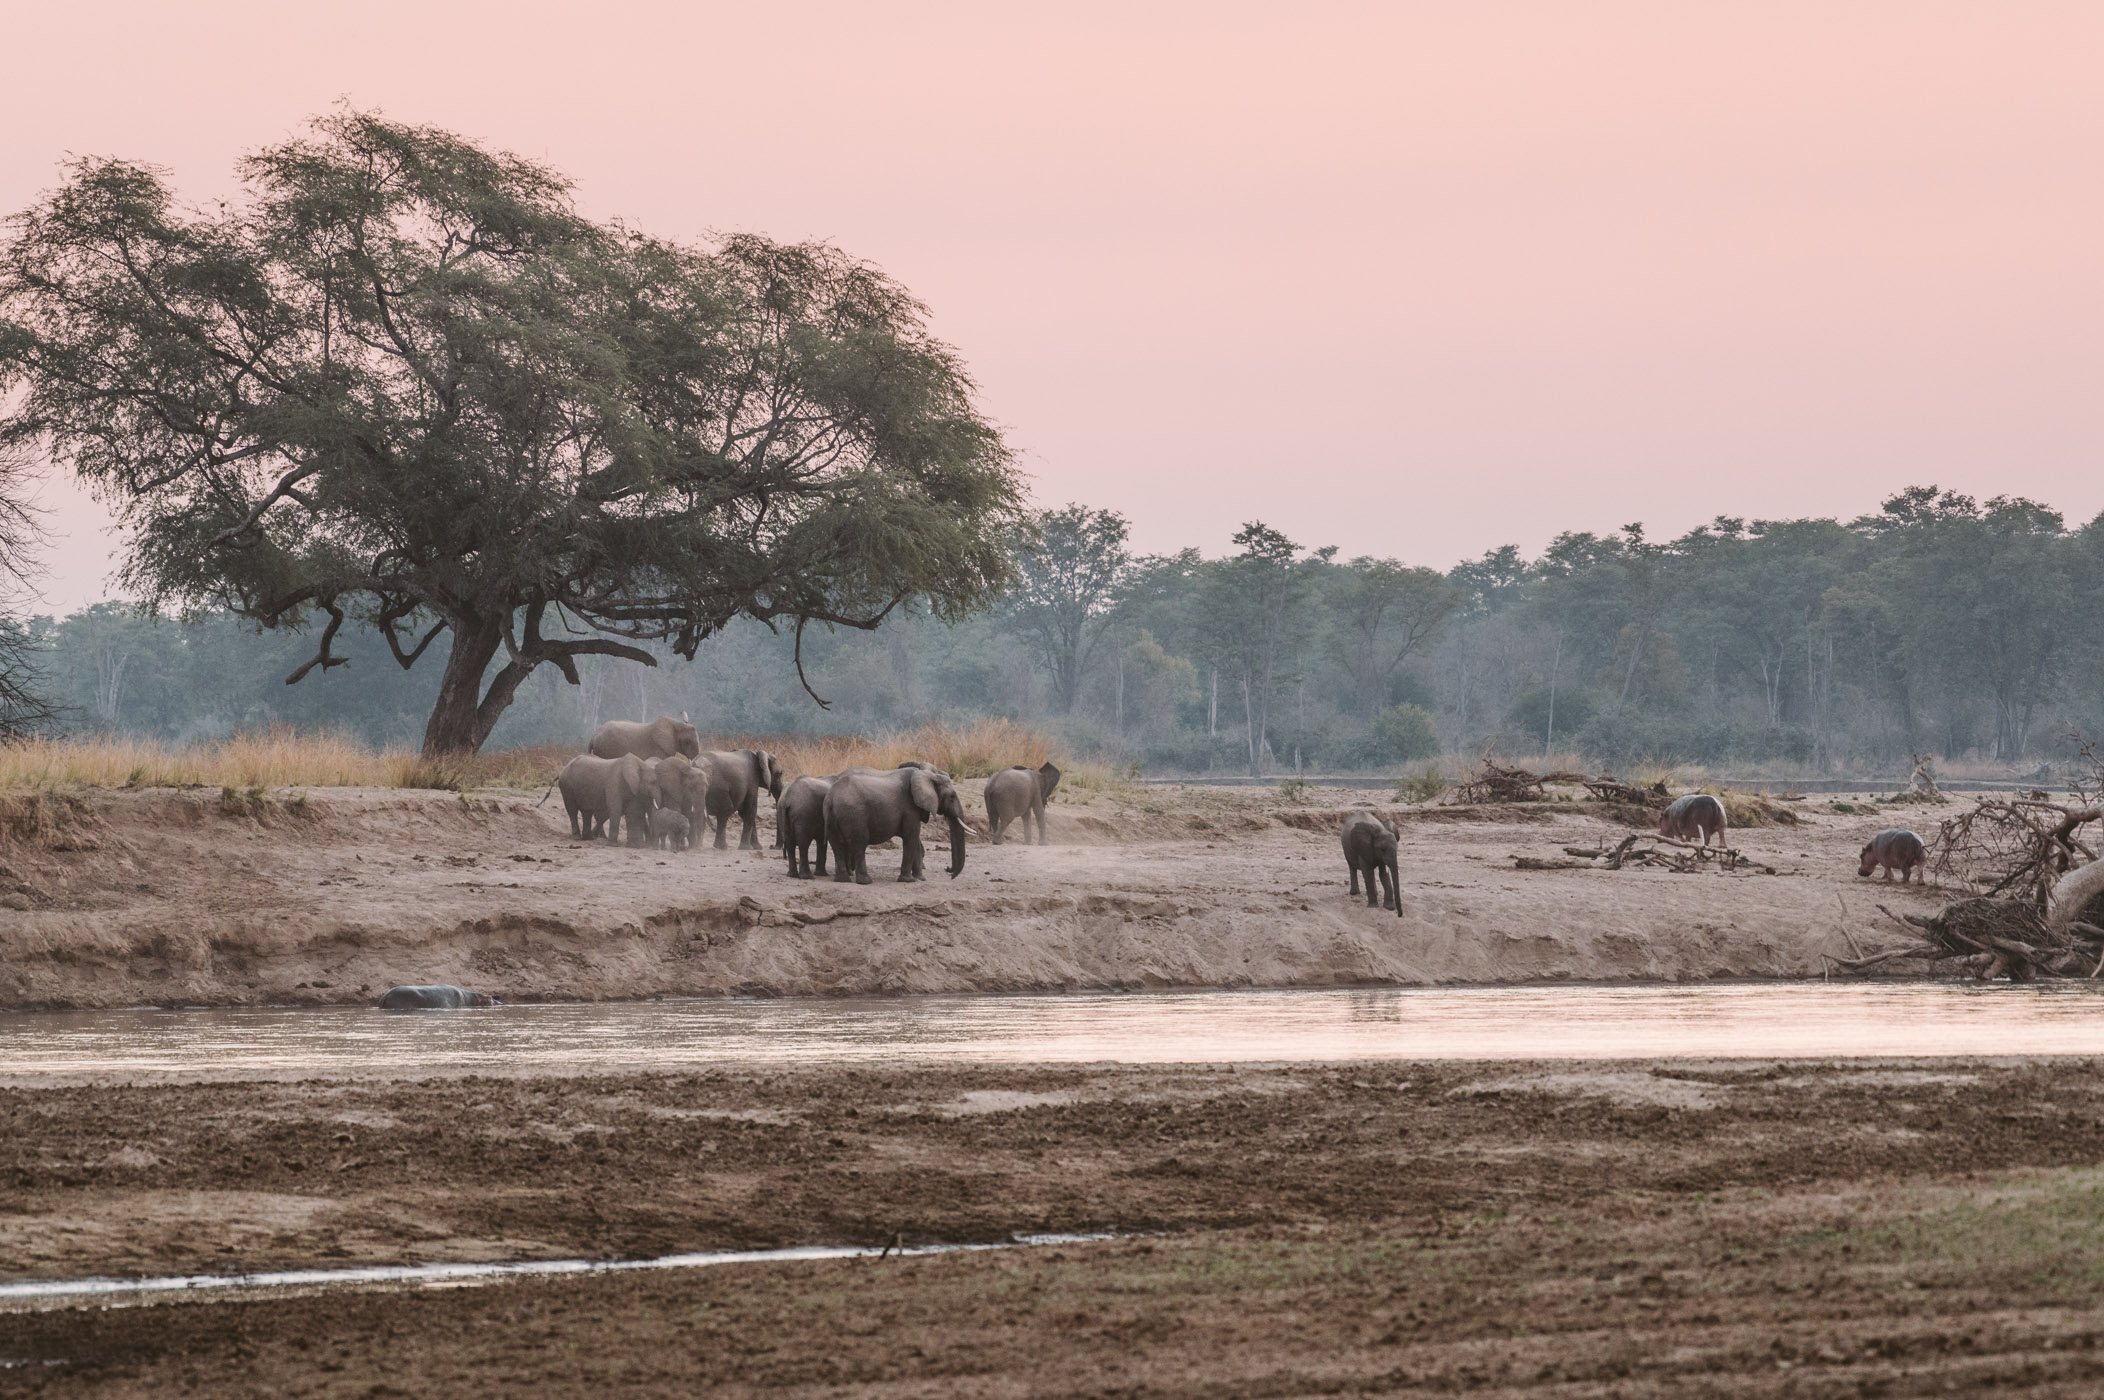 Elephant herd at the Luangwa river in South Luangwa National Park Zambia